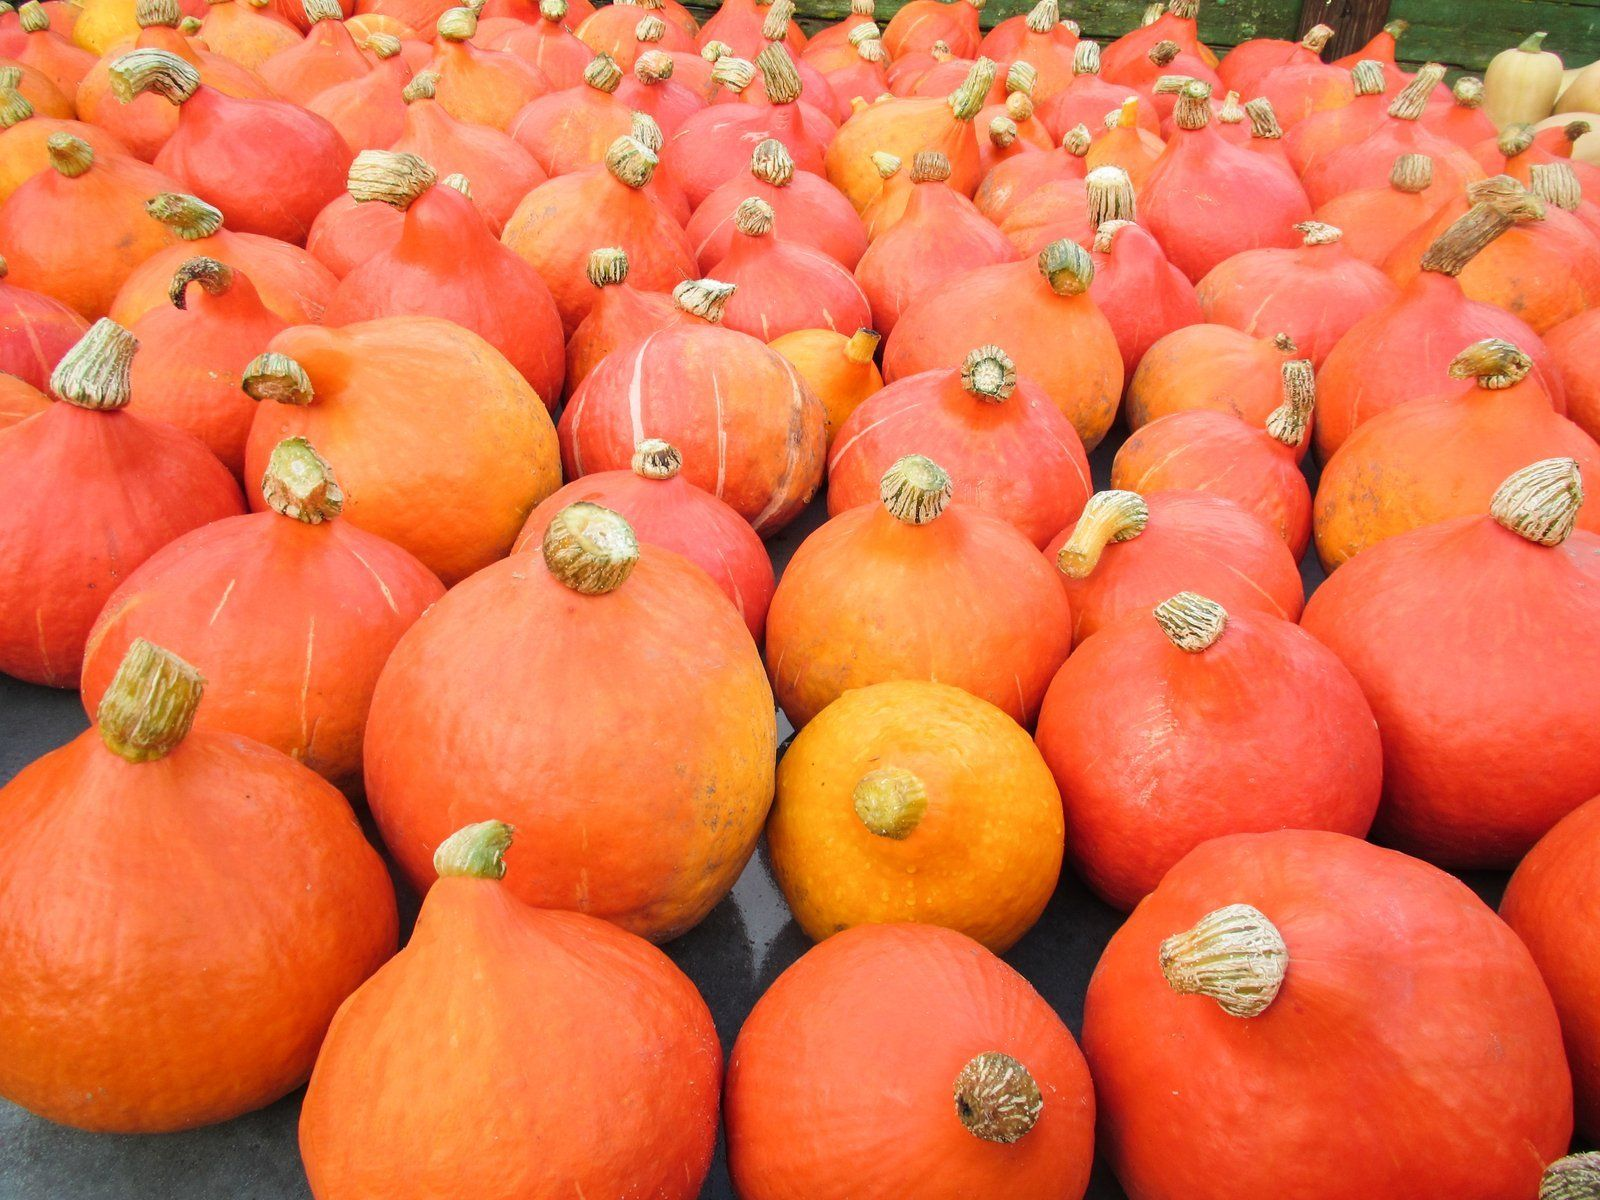 Red Kuri Winter Squash and Ribeye Steaks Available The Week!